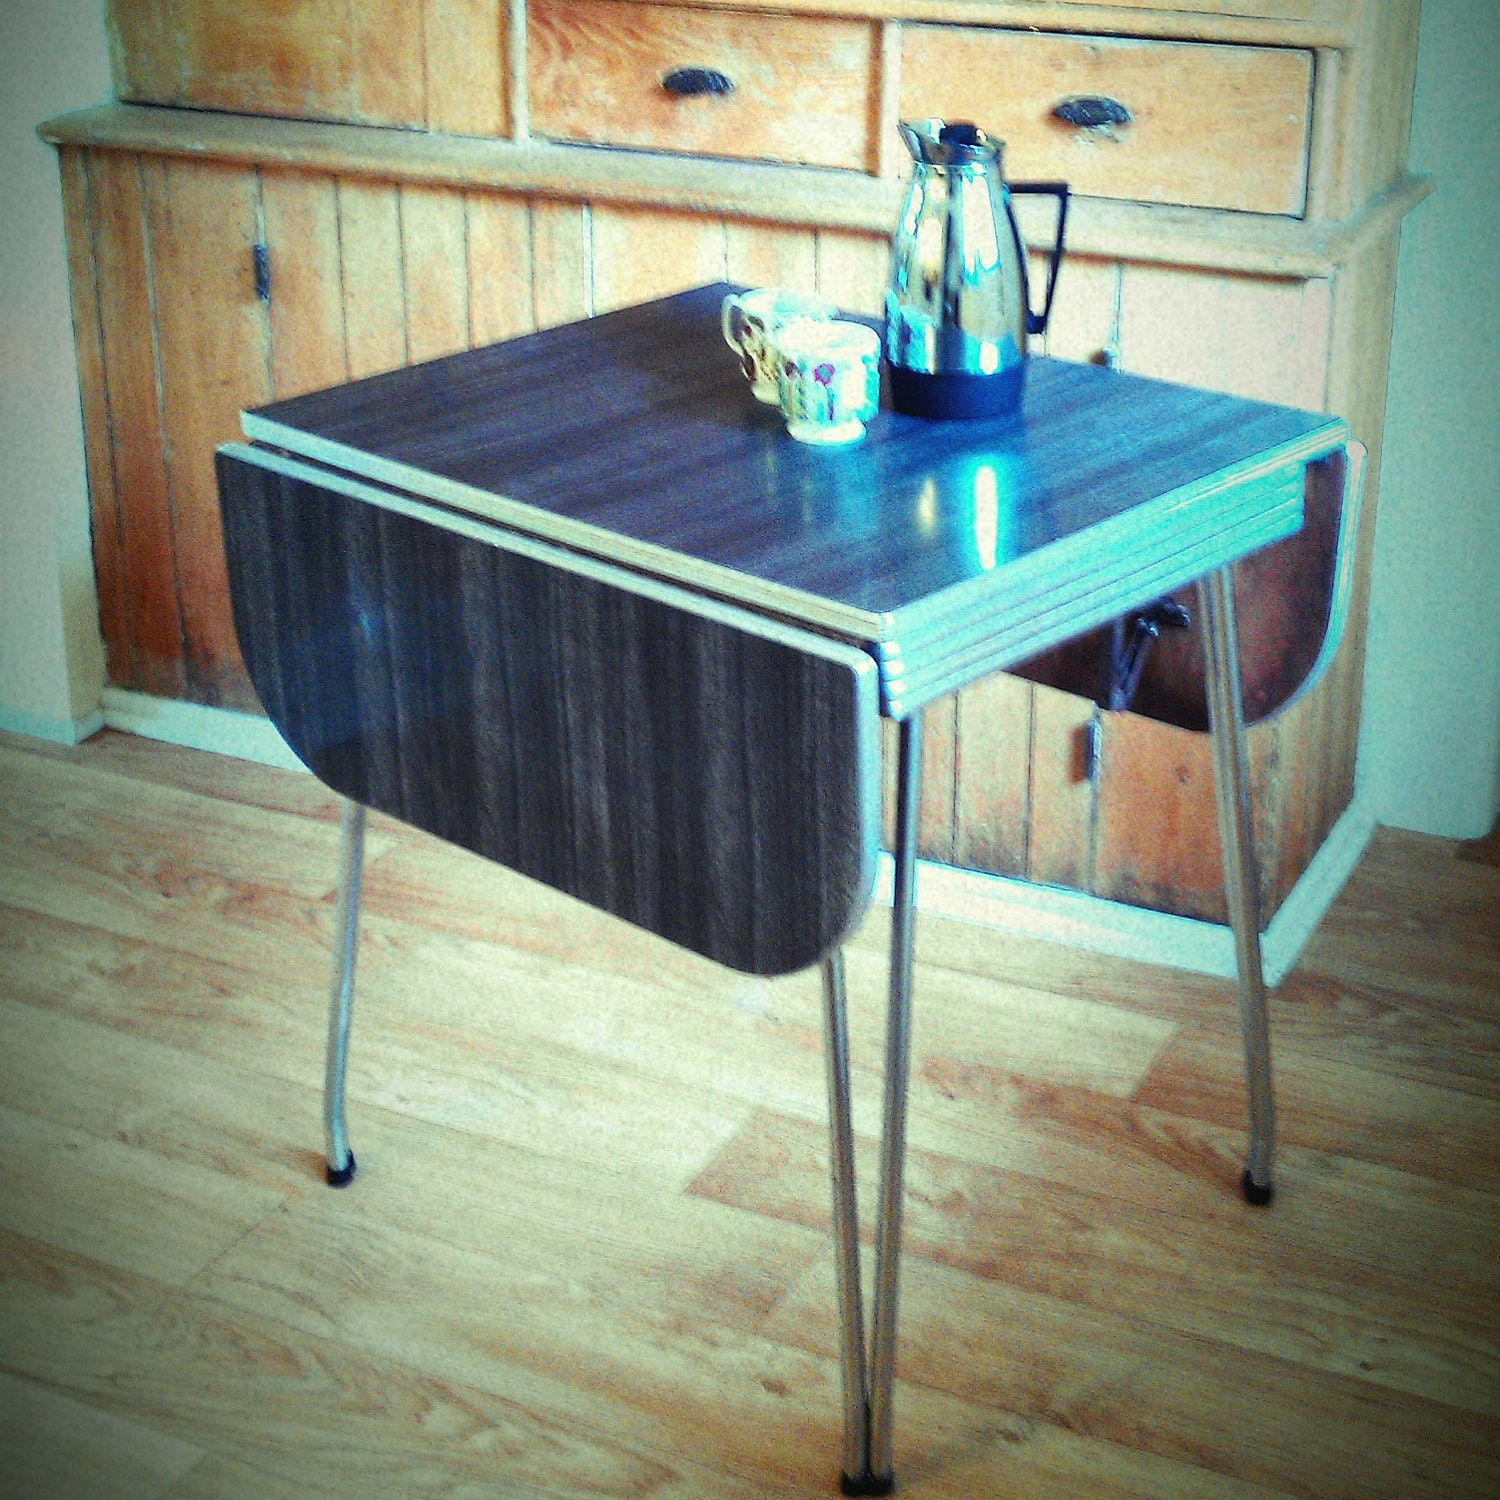 Vintage formica top kitchen table by lisabretrostyle2 on etsy - Formica top kitchen tables ...